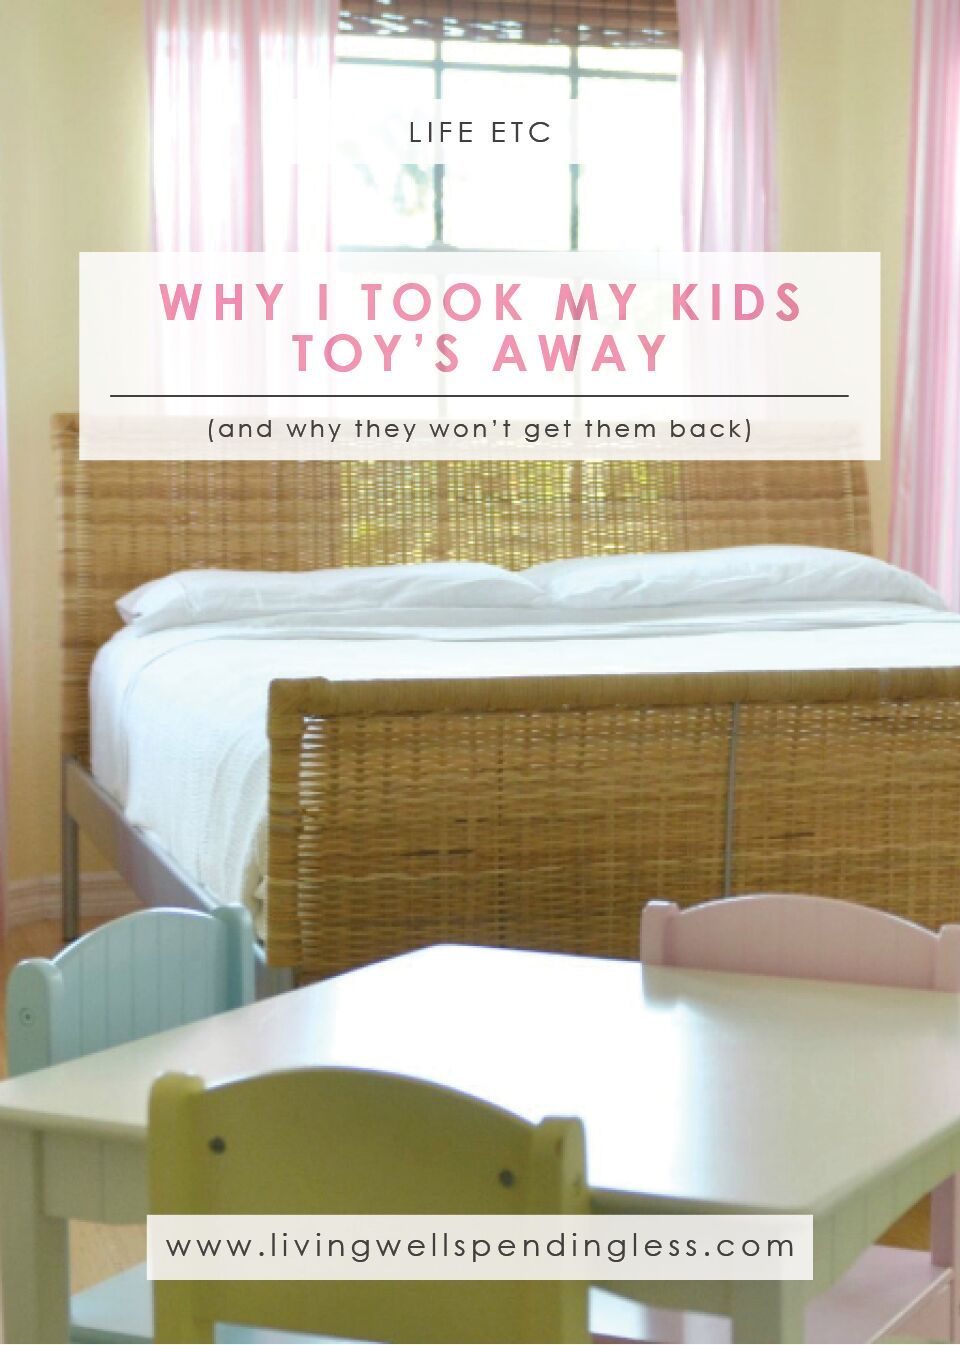 What To Do With Too Many Toys | Behavior Management | Raising Kids |  Disciplining Children